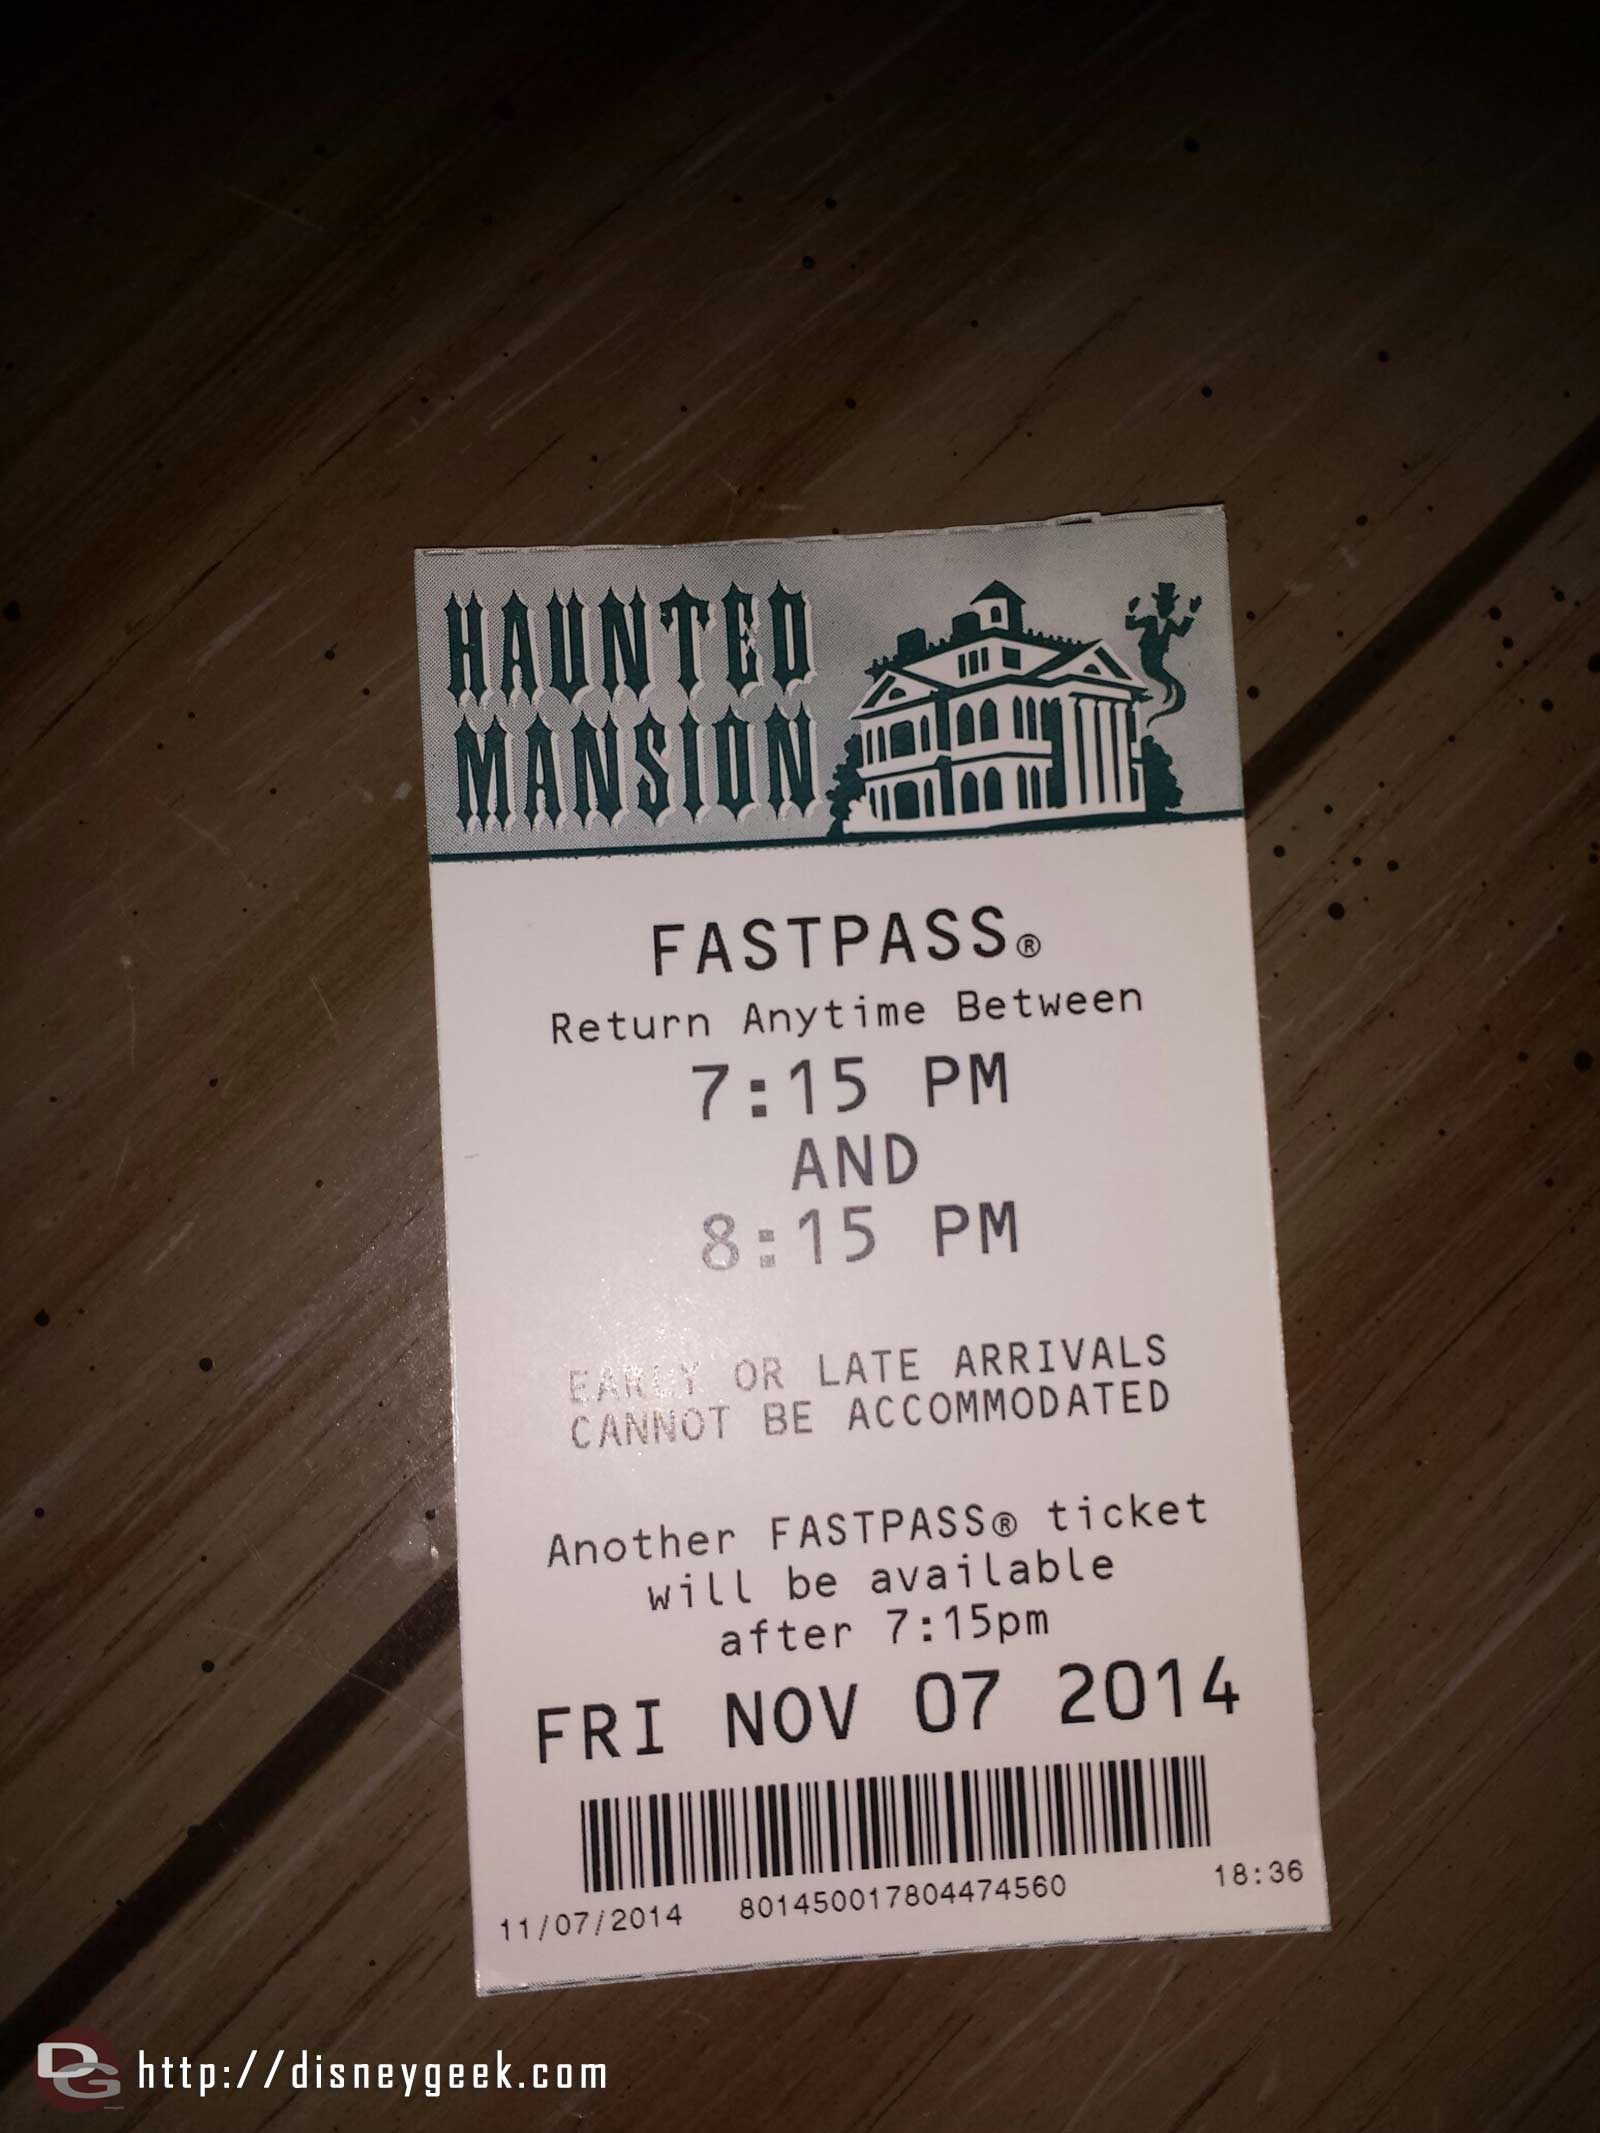 Haunted Mansion now has FastPass, no need right now it was a walk on